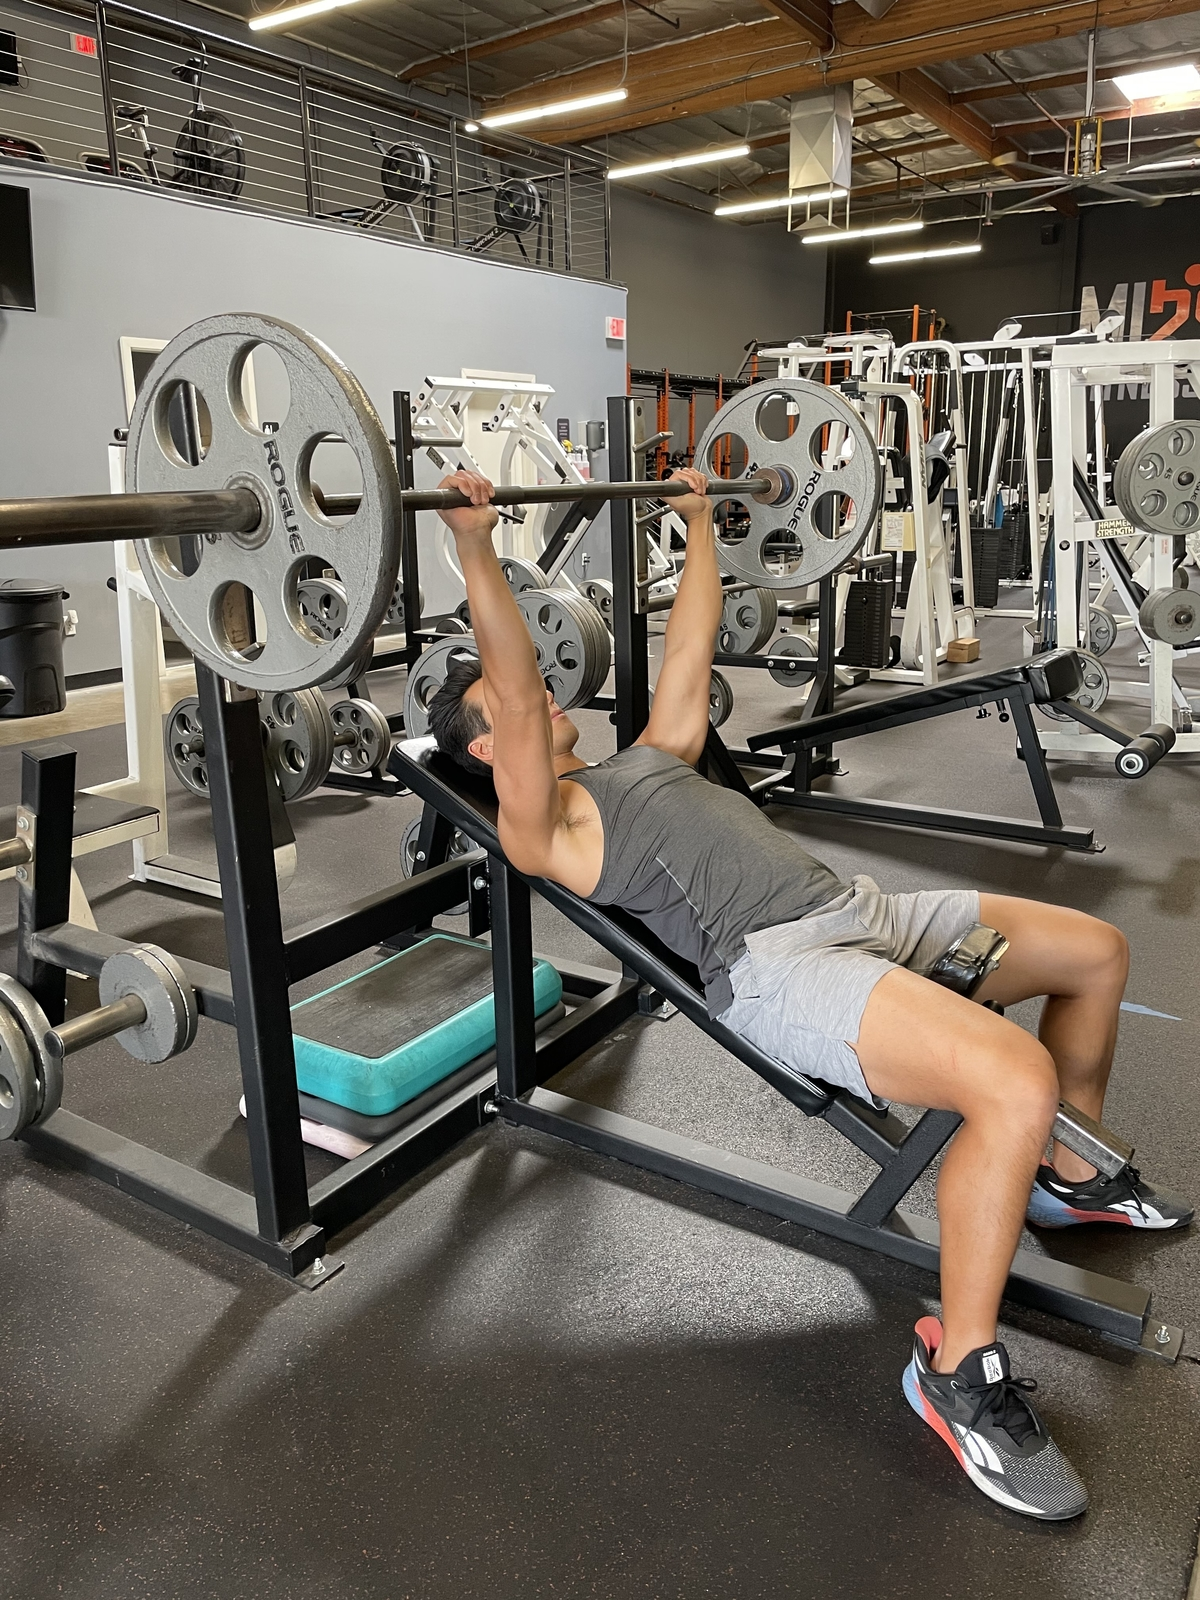 13 - Incline barbell bench press